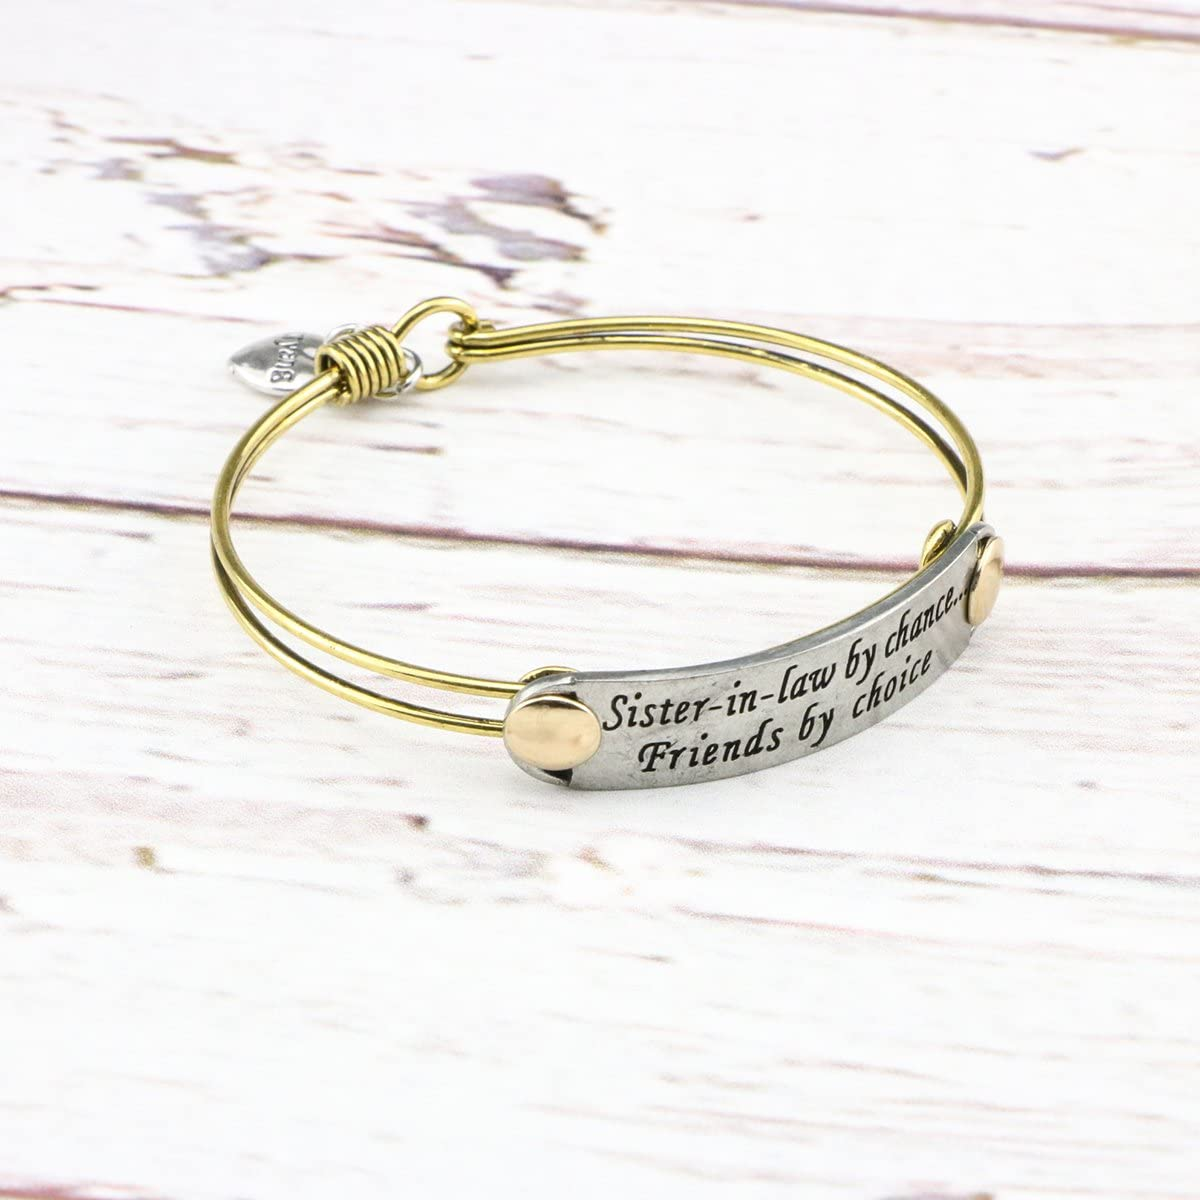 UNQJRY Sister Bracelets for Friends Inspiration Vintage Bangle Brass Copper Friendship Jewelry Gift